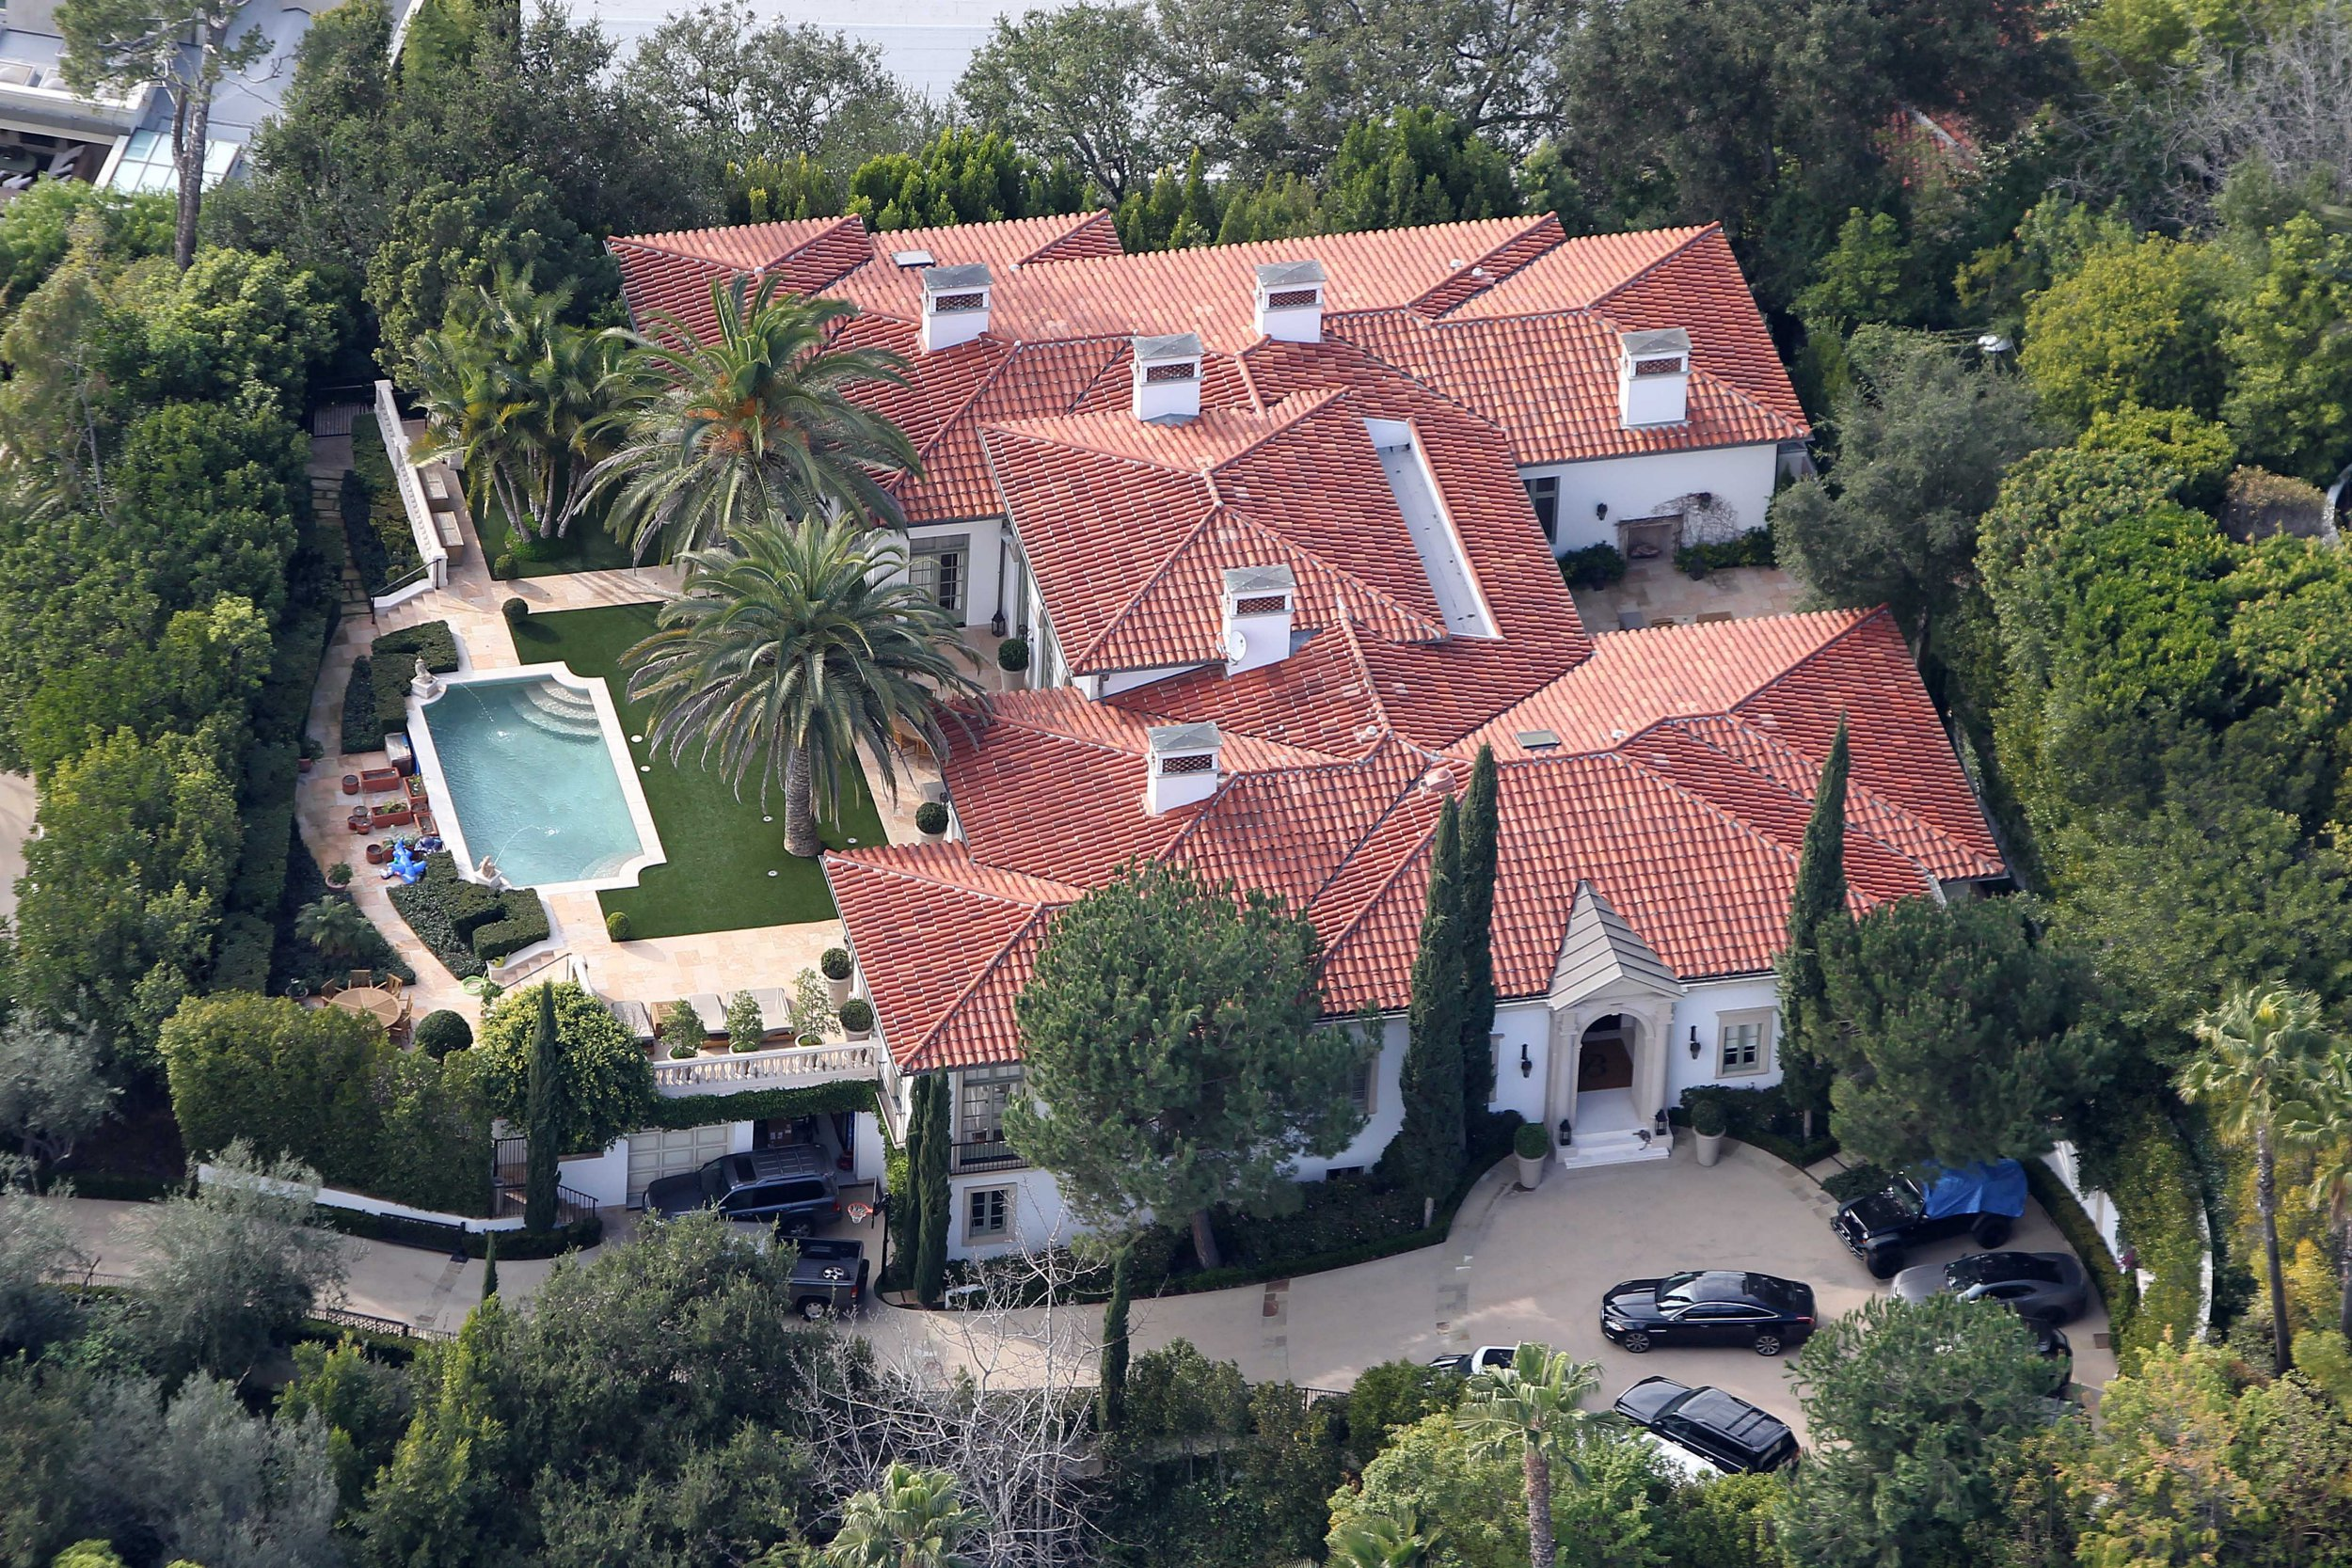 David and Victoria Beckham have quietly sold their longtime Beverly Hills mansion for $33.1m. The former England great and his Spice Girl wife sold the six bedroom and nine bathroom Italian villa-style mansion in an off-market deal, according to the L.A Times. The 13,000 square-ft home was built in 2007 and sits behind iron gates at the end of a private driveway. The ?H? shaped home comes with formal living and dining rooms, a lift, a library and a media and music room. David, 43, and Victoria, 44, bought the home in 2007 shortly after he signed a five-year deal to play for the Los Angeles Galaxy, where he won the 2011 and 2012 Major League Soccer titles. Pictured: Ref: SPL5030588 041018 NON-EXCLUSIVE Picture by: NML / SplashNews.com Splash News and Pictures Los Angeles: 310-821-2666 New York: 212-619-2666 London: 0207 644 7656 Milan: +39 02 4399 8577 Sydney: +61 02 9240 7700 photodesk@splashnews.com World Rights,